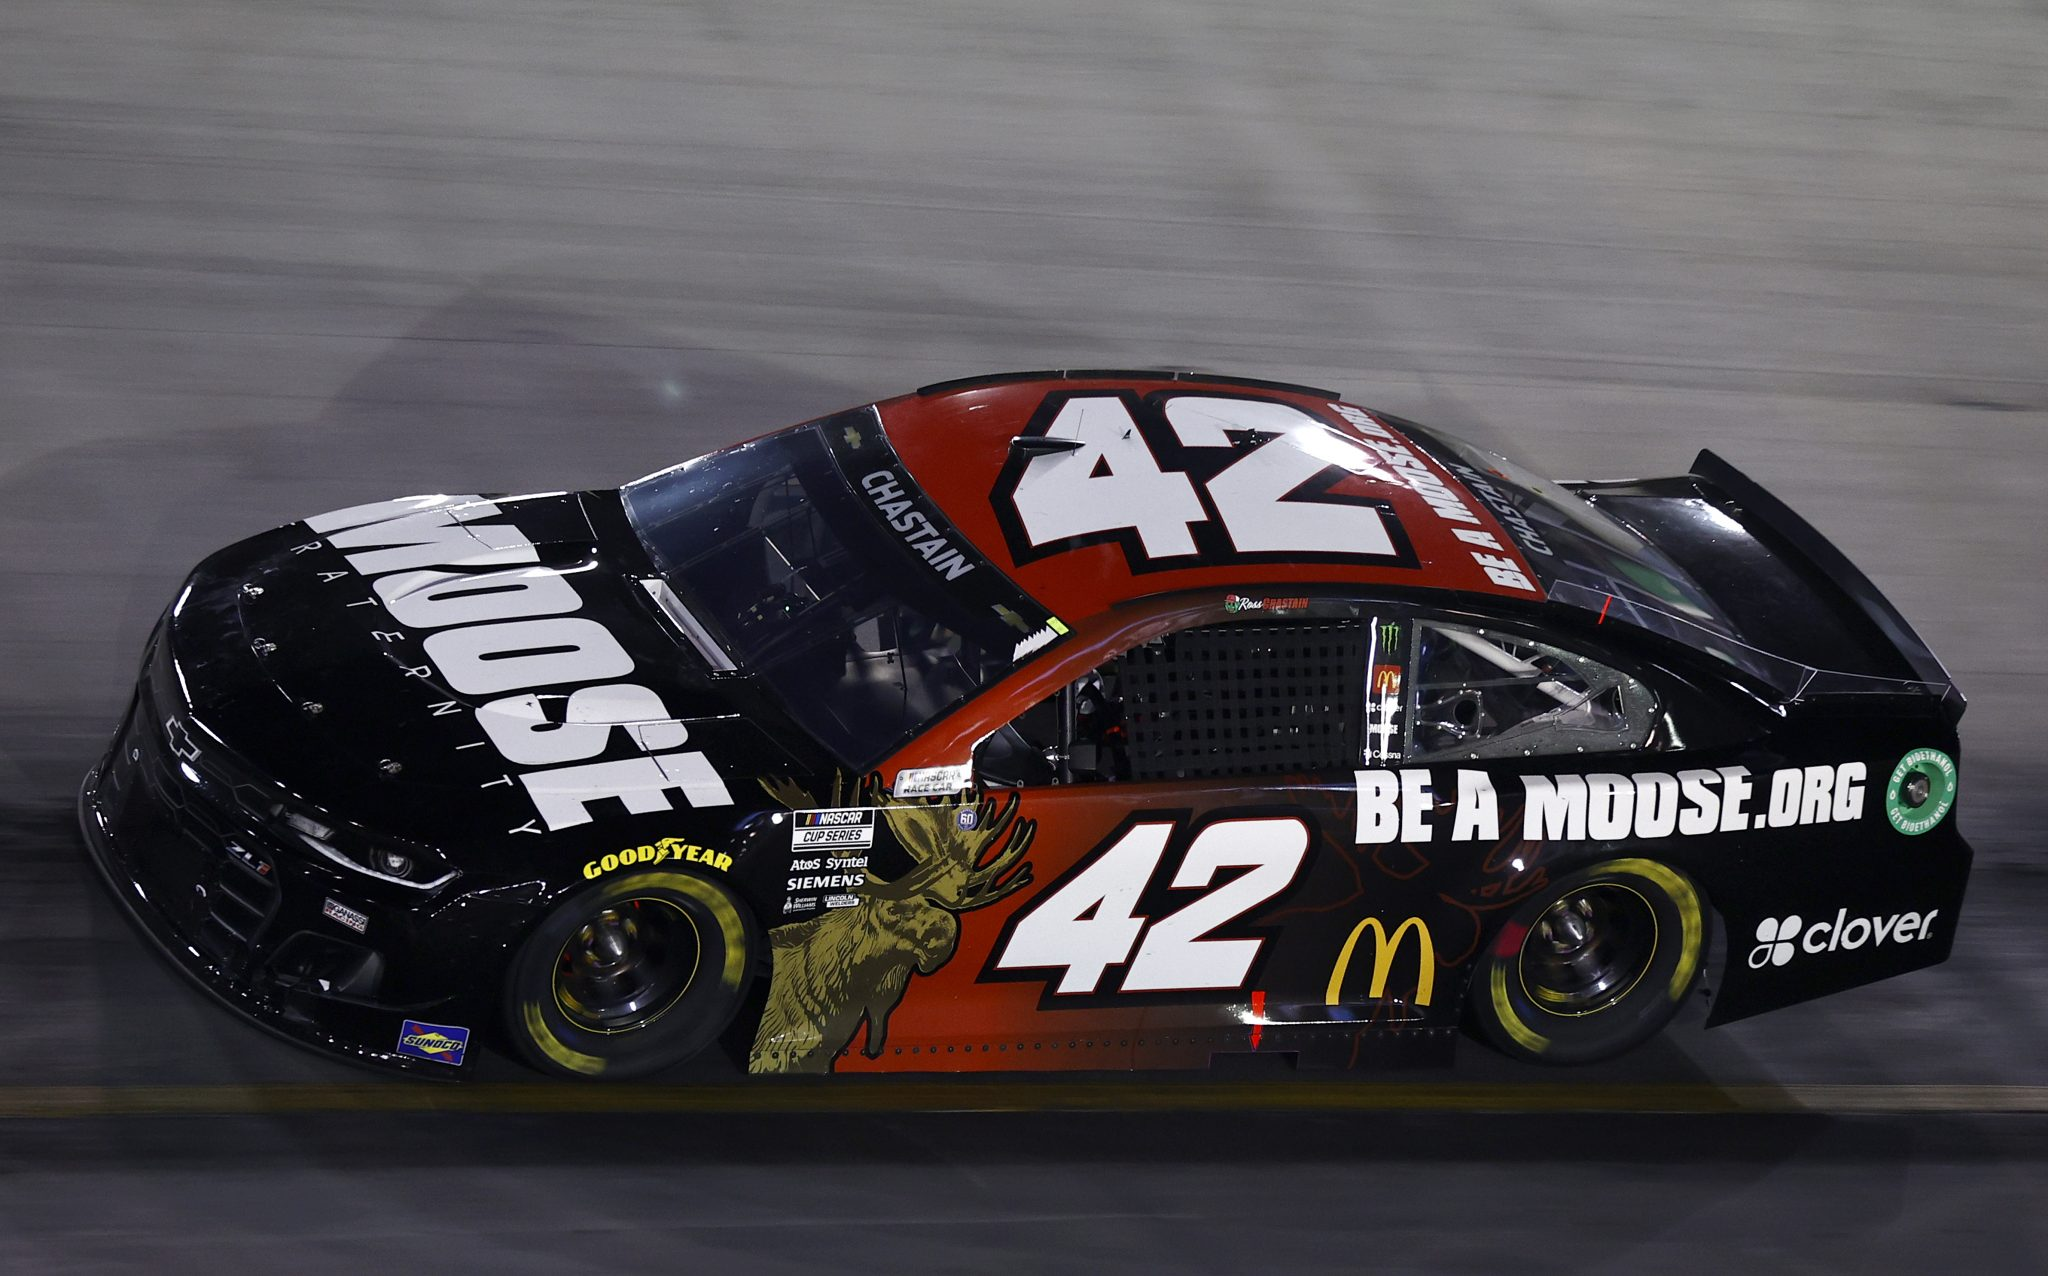 BRISTOL, TENNESSEE - SEPTEMBER 18: Ross Chastain, driver of the #42 Moose Fraternity Chevrolet, drives during the NASCAR Cup Series Bass Pro Shops Night Race at Bristol Motor Speedway on September 18, 2021 in Bristol, Tennessee. (Photo by Jared C. Tilton/Getty Images) | Getty Images